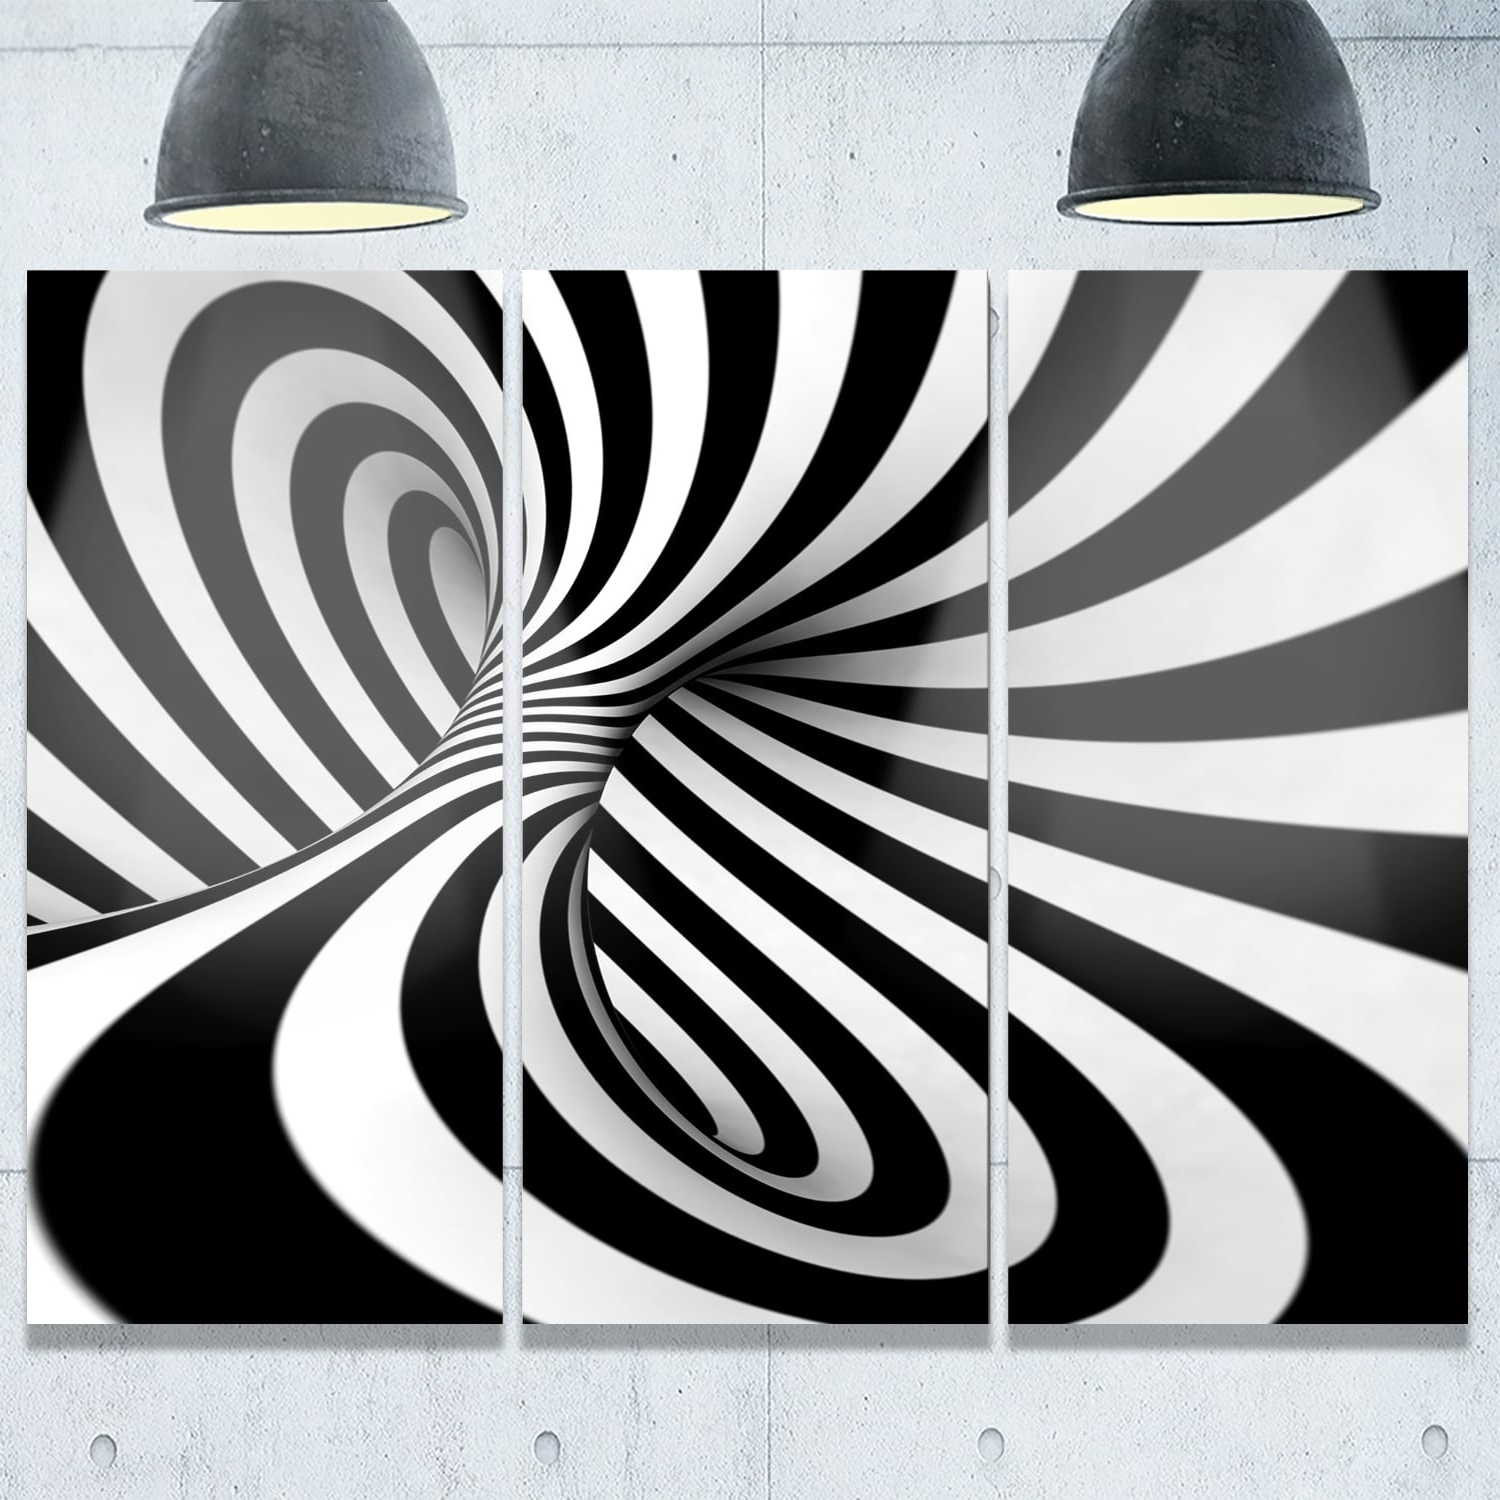 2017 Black And White Abstract Wall Art With Spiral Black N' White – Abstract Art Glossy Metal Wall Art – Free (View 8 of 15)